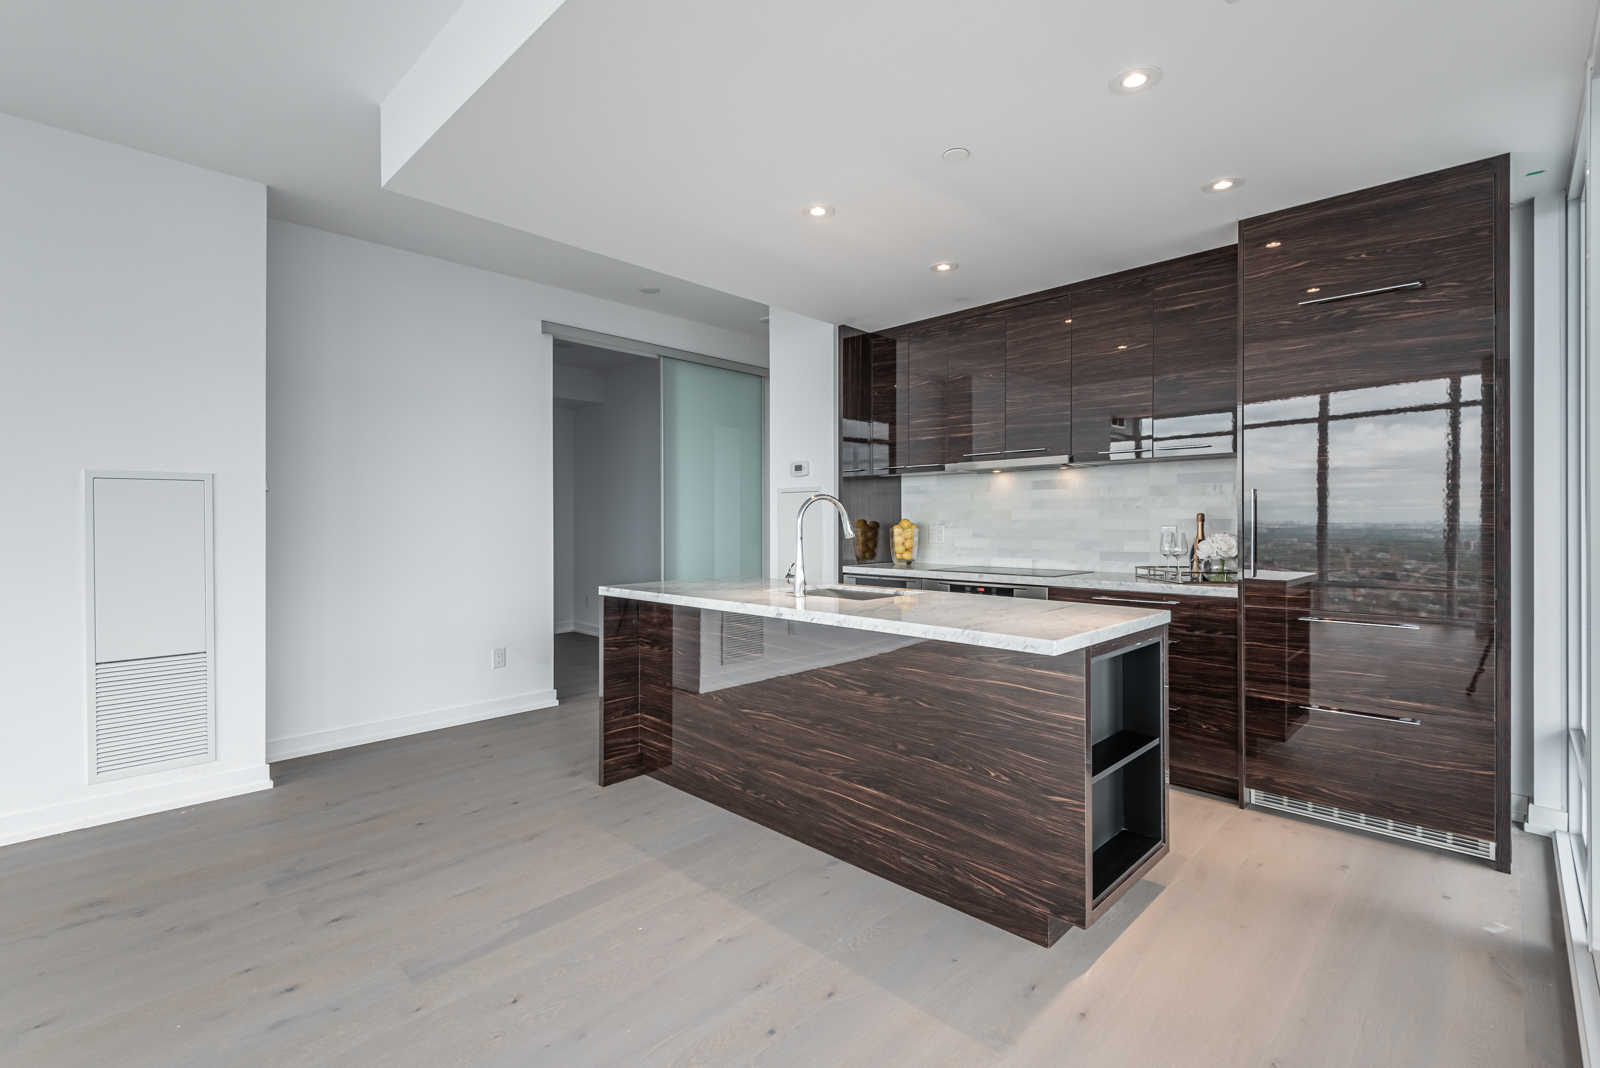 488 University Ave kitchen with gleaming dark brown cabinets and drawers.